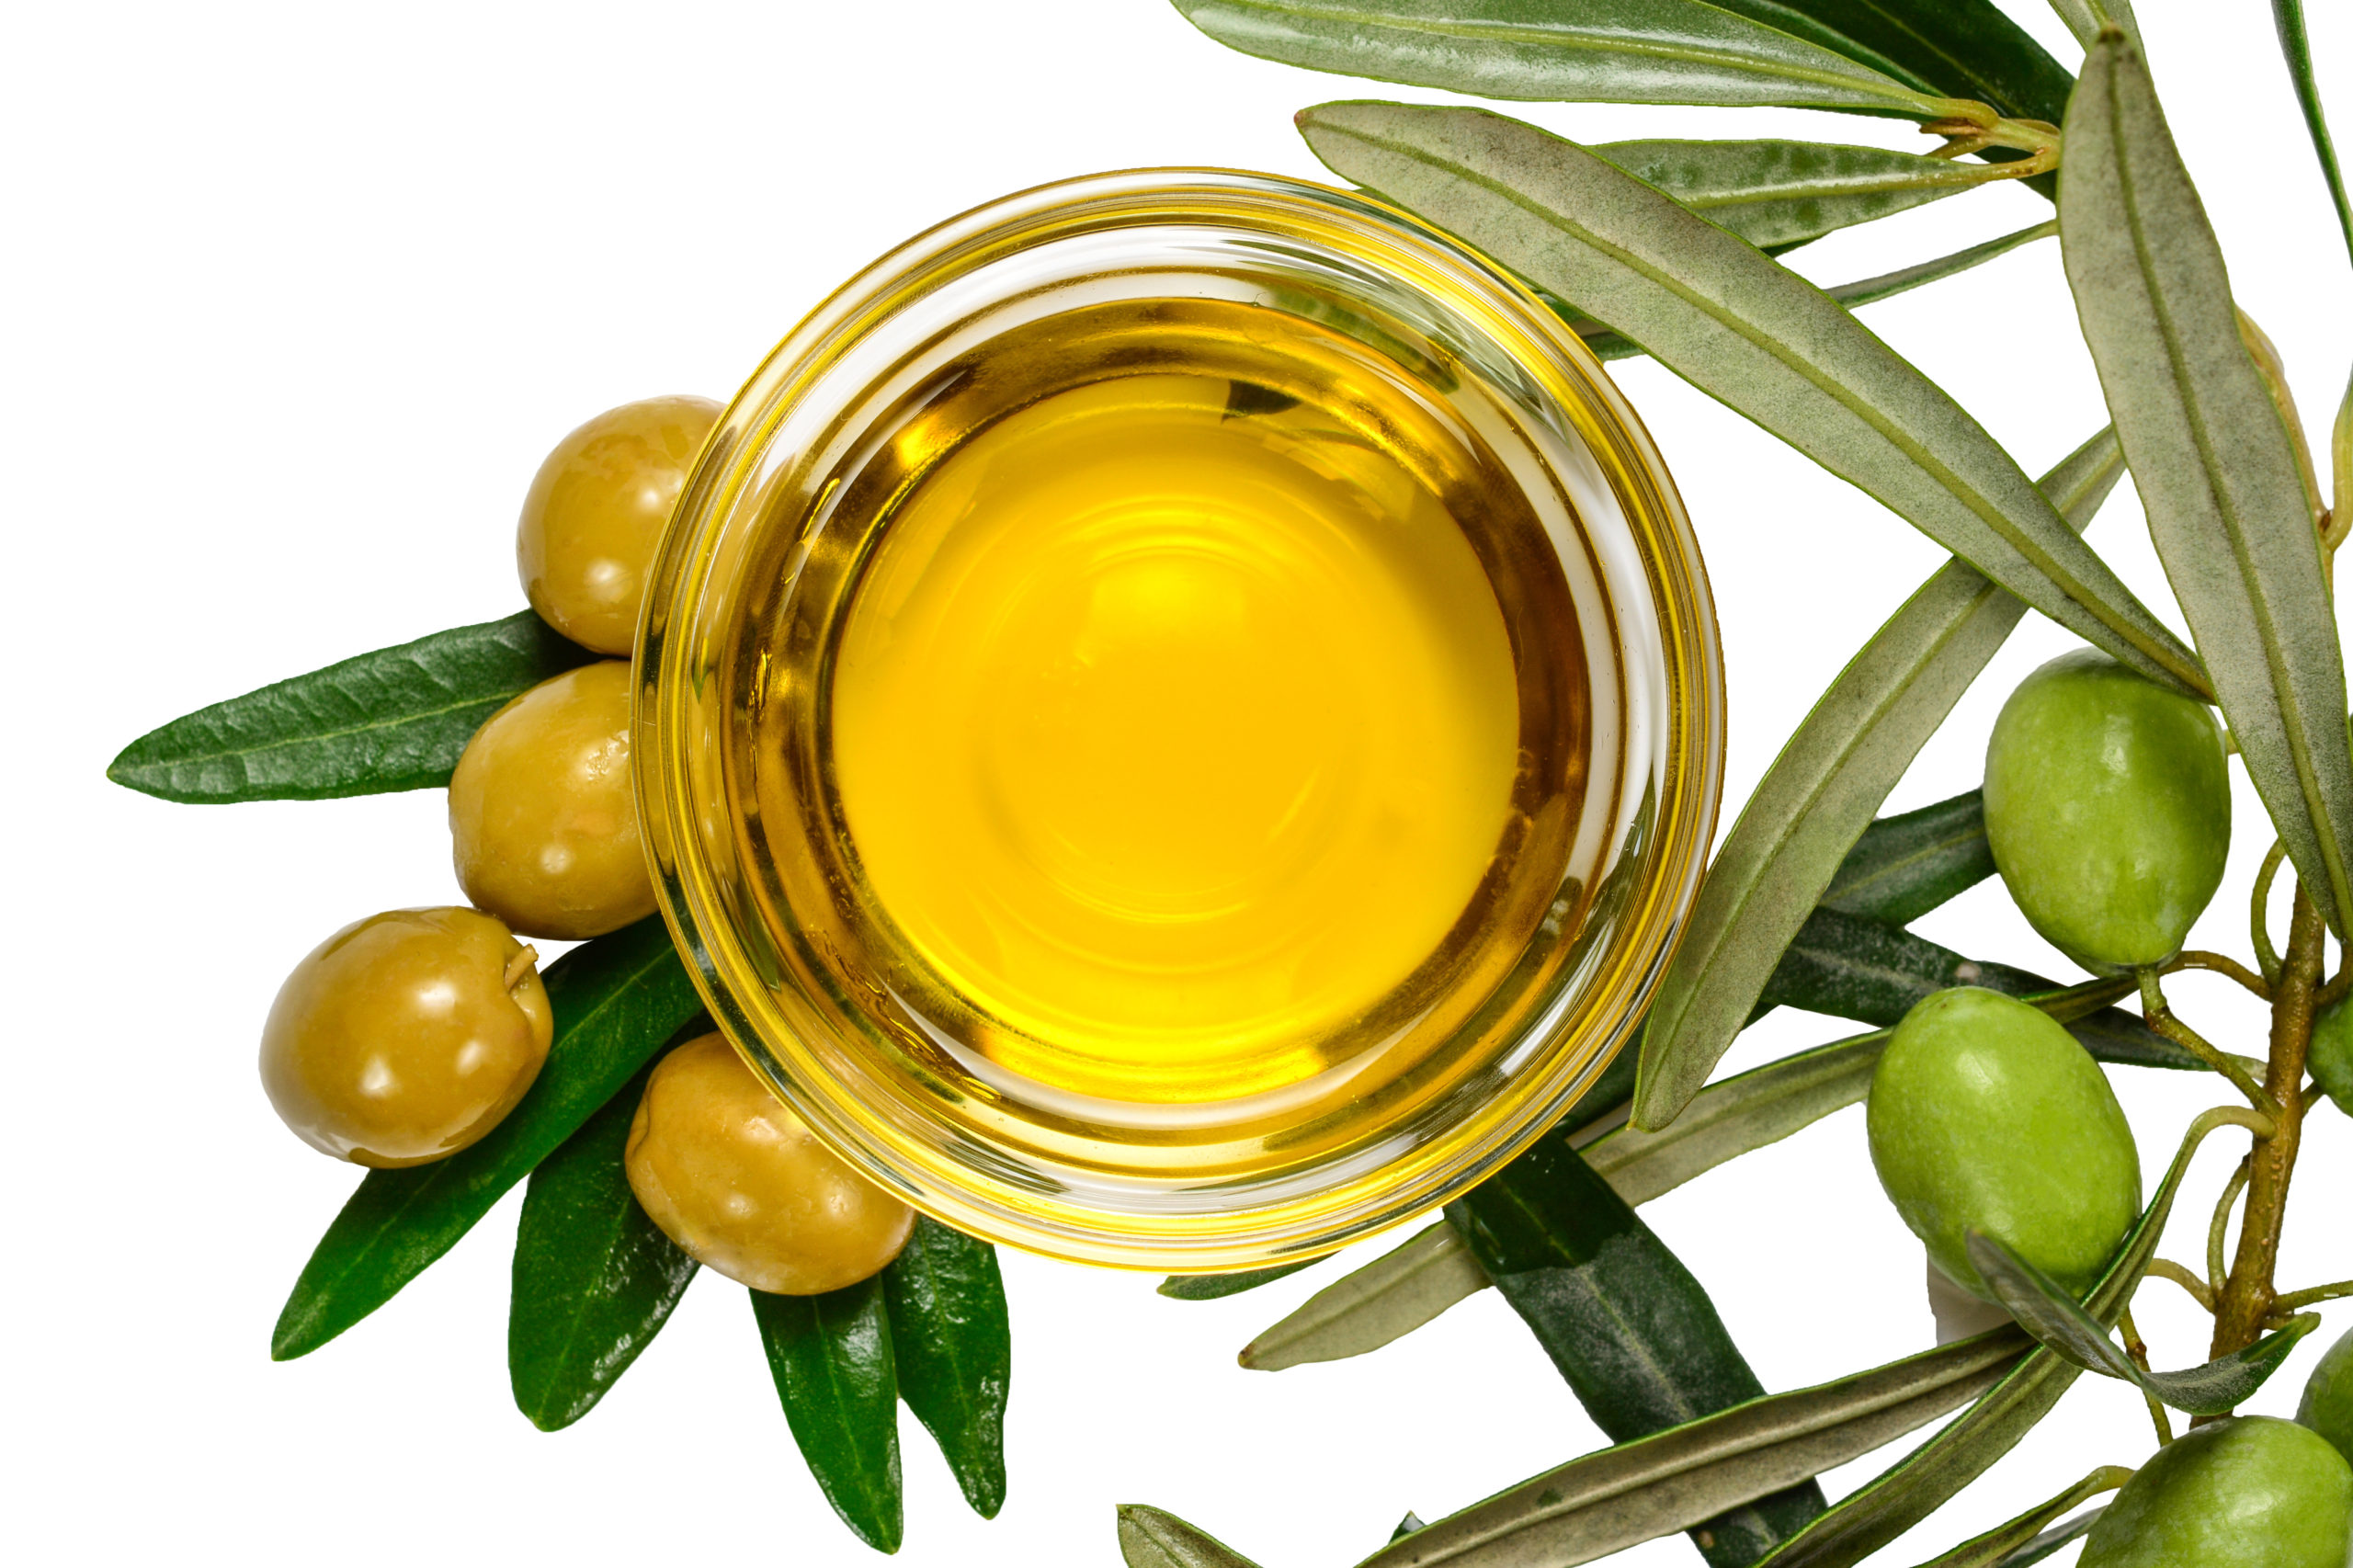 Olive Leaf Extract – A Simple Way To Boost Our Immune System